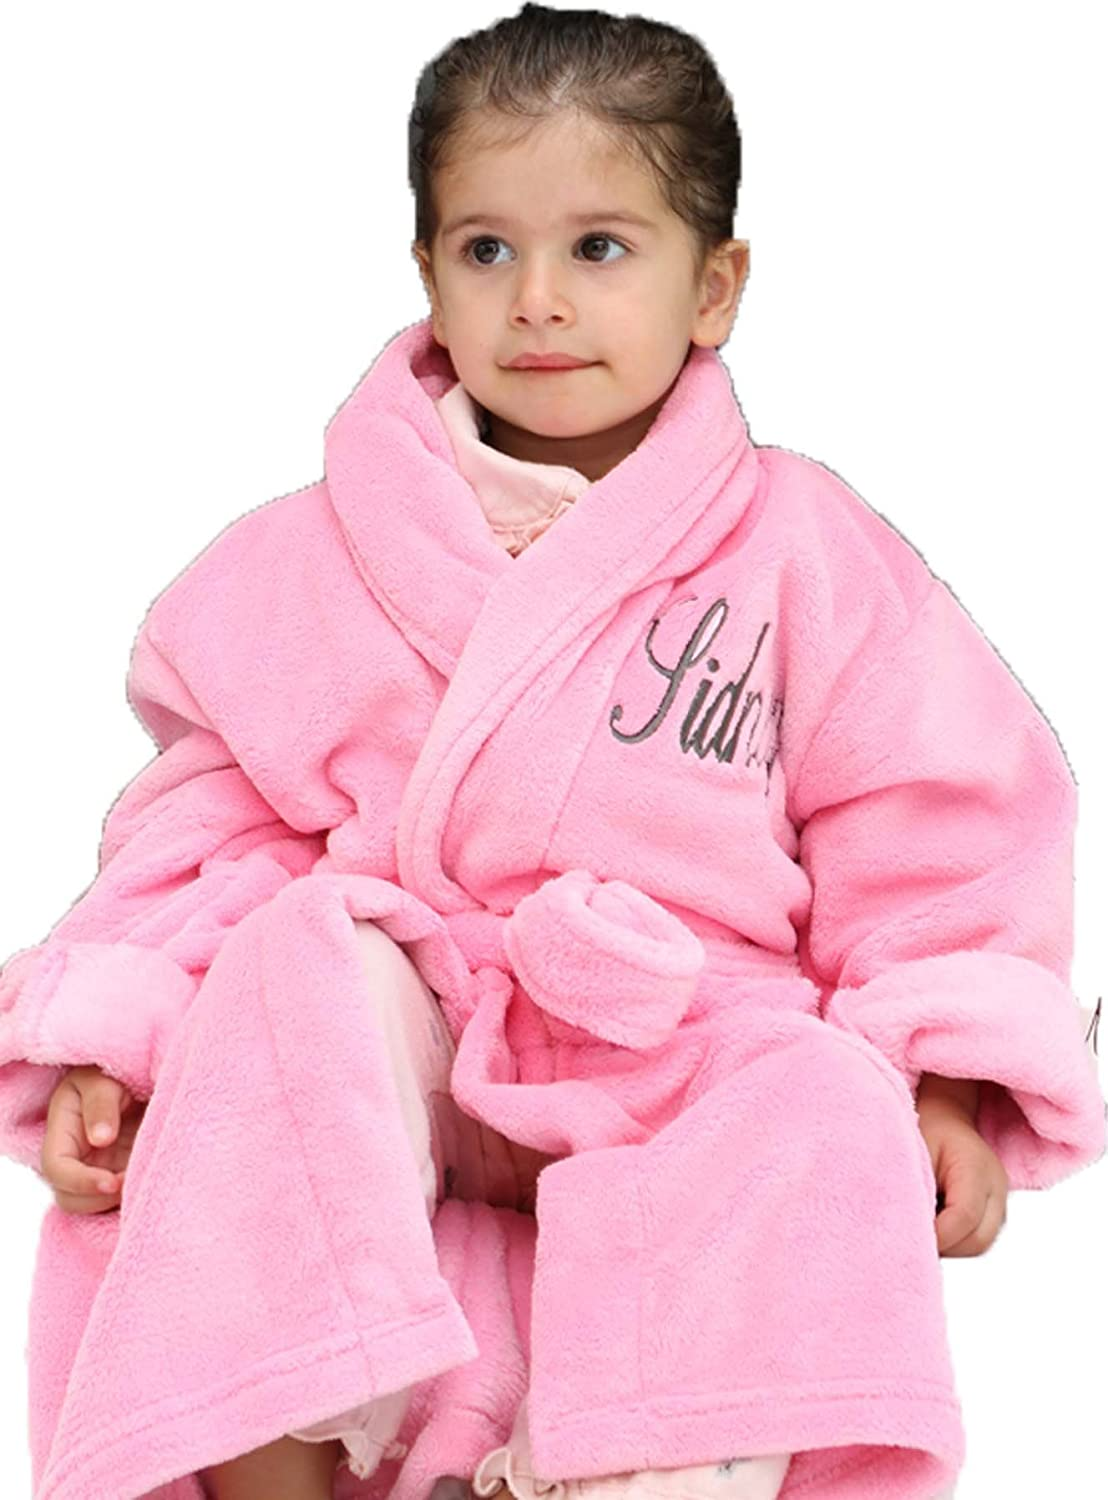 Wrapped In A Cloud Signature Bathrobe Pink Spring new work Plush Elegant Childrens -